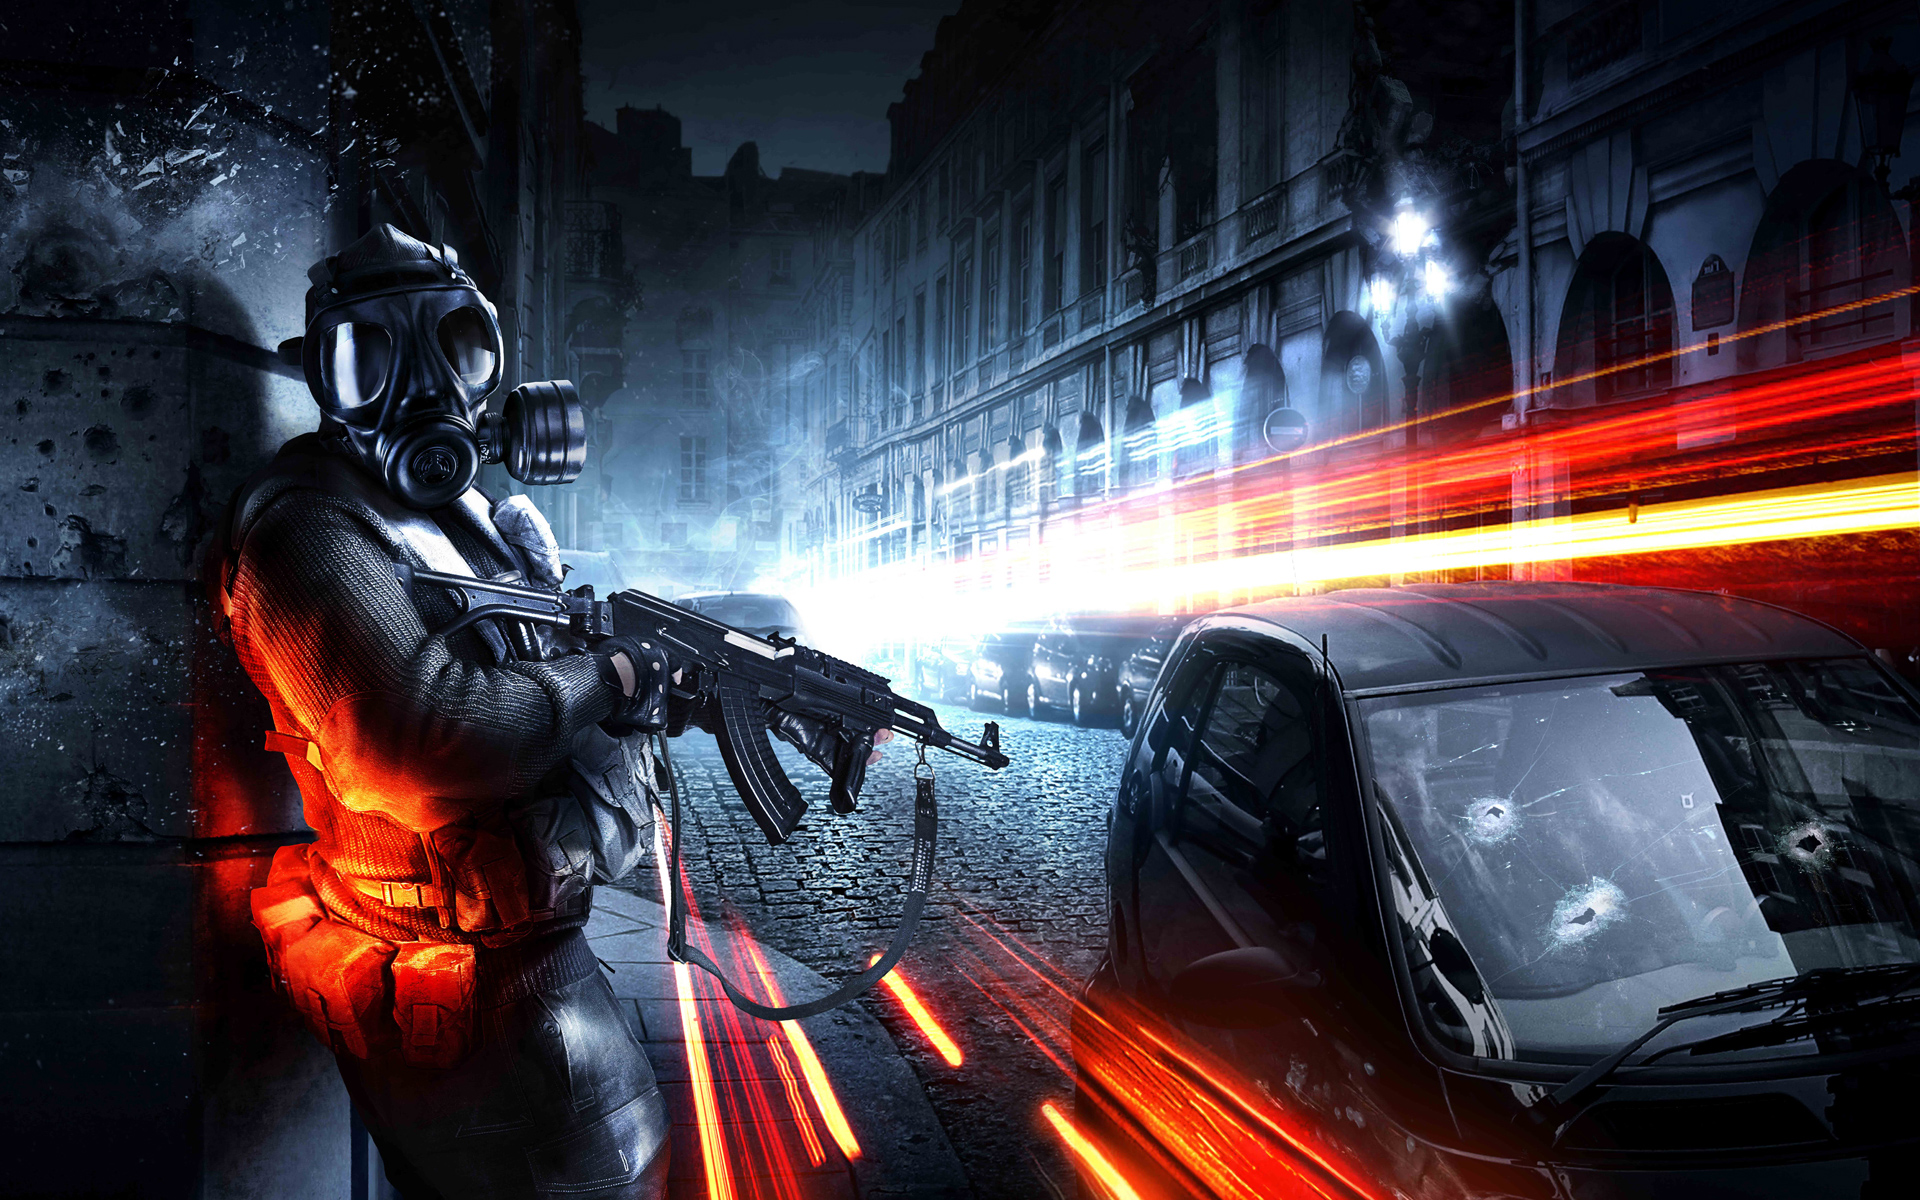 2011 Battlefield 3 Game 878.52 Kb